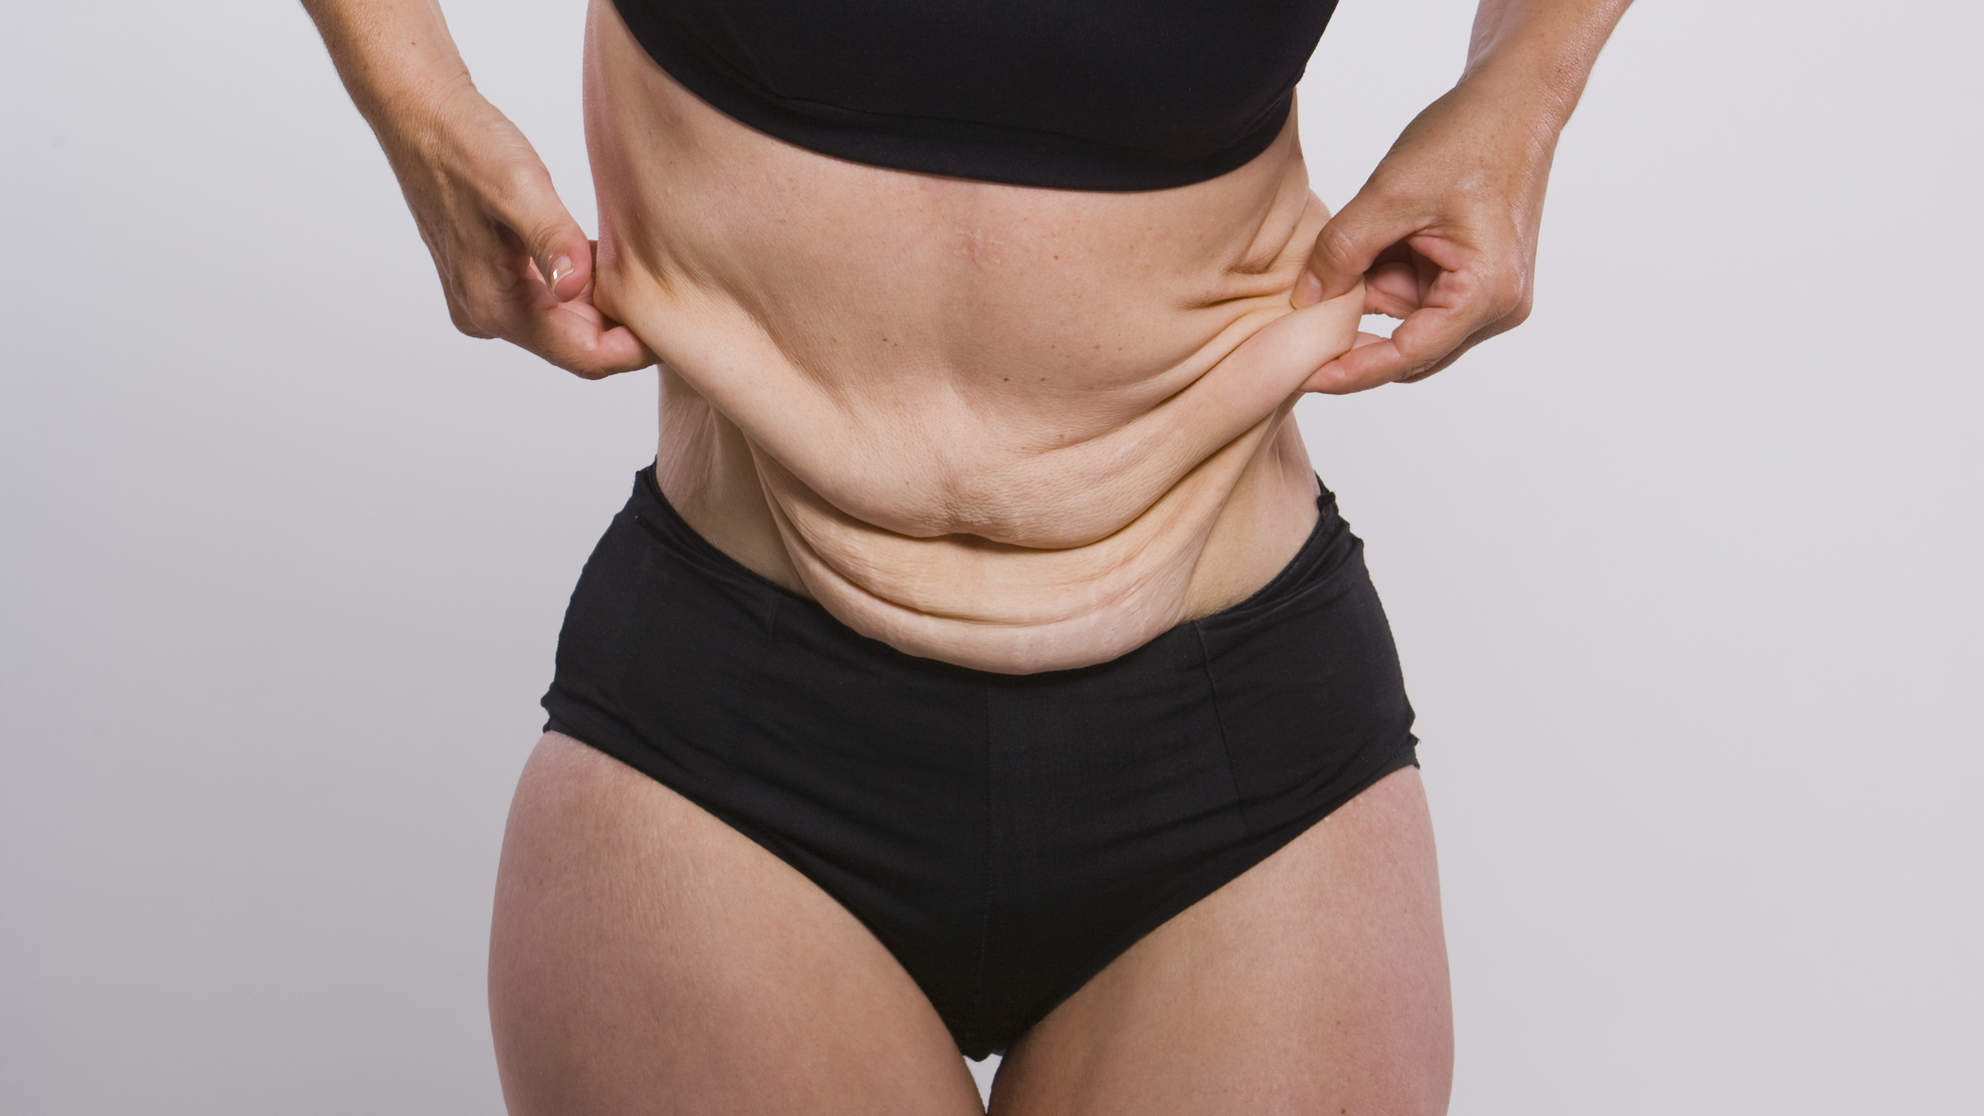 How Can You Overcome Weight Loss Challenges